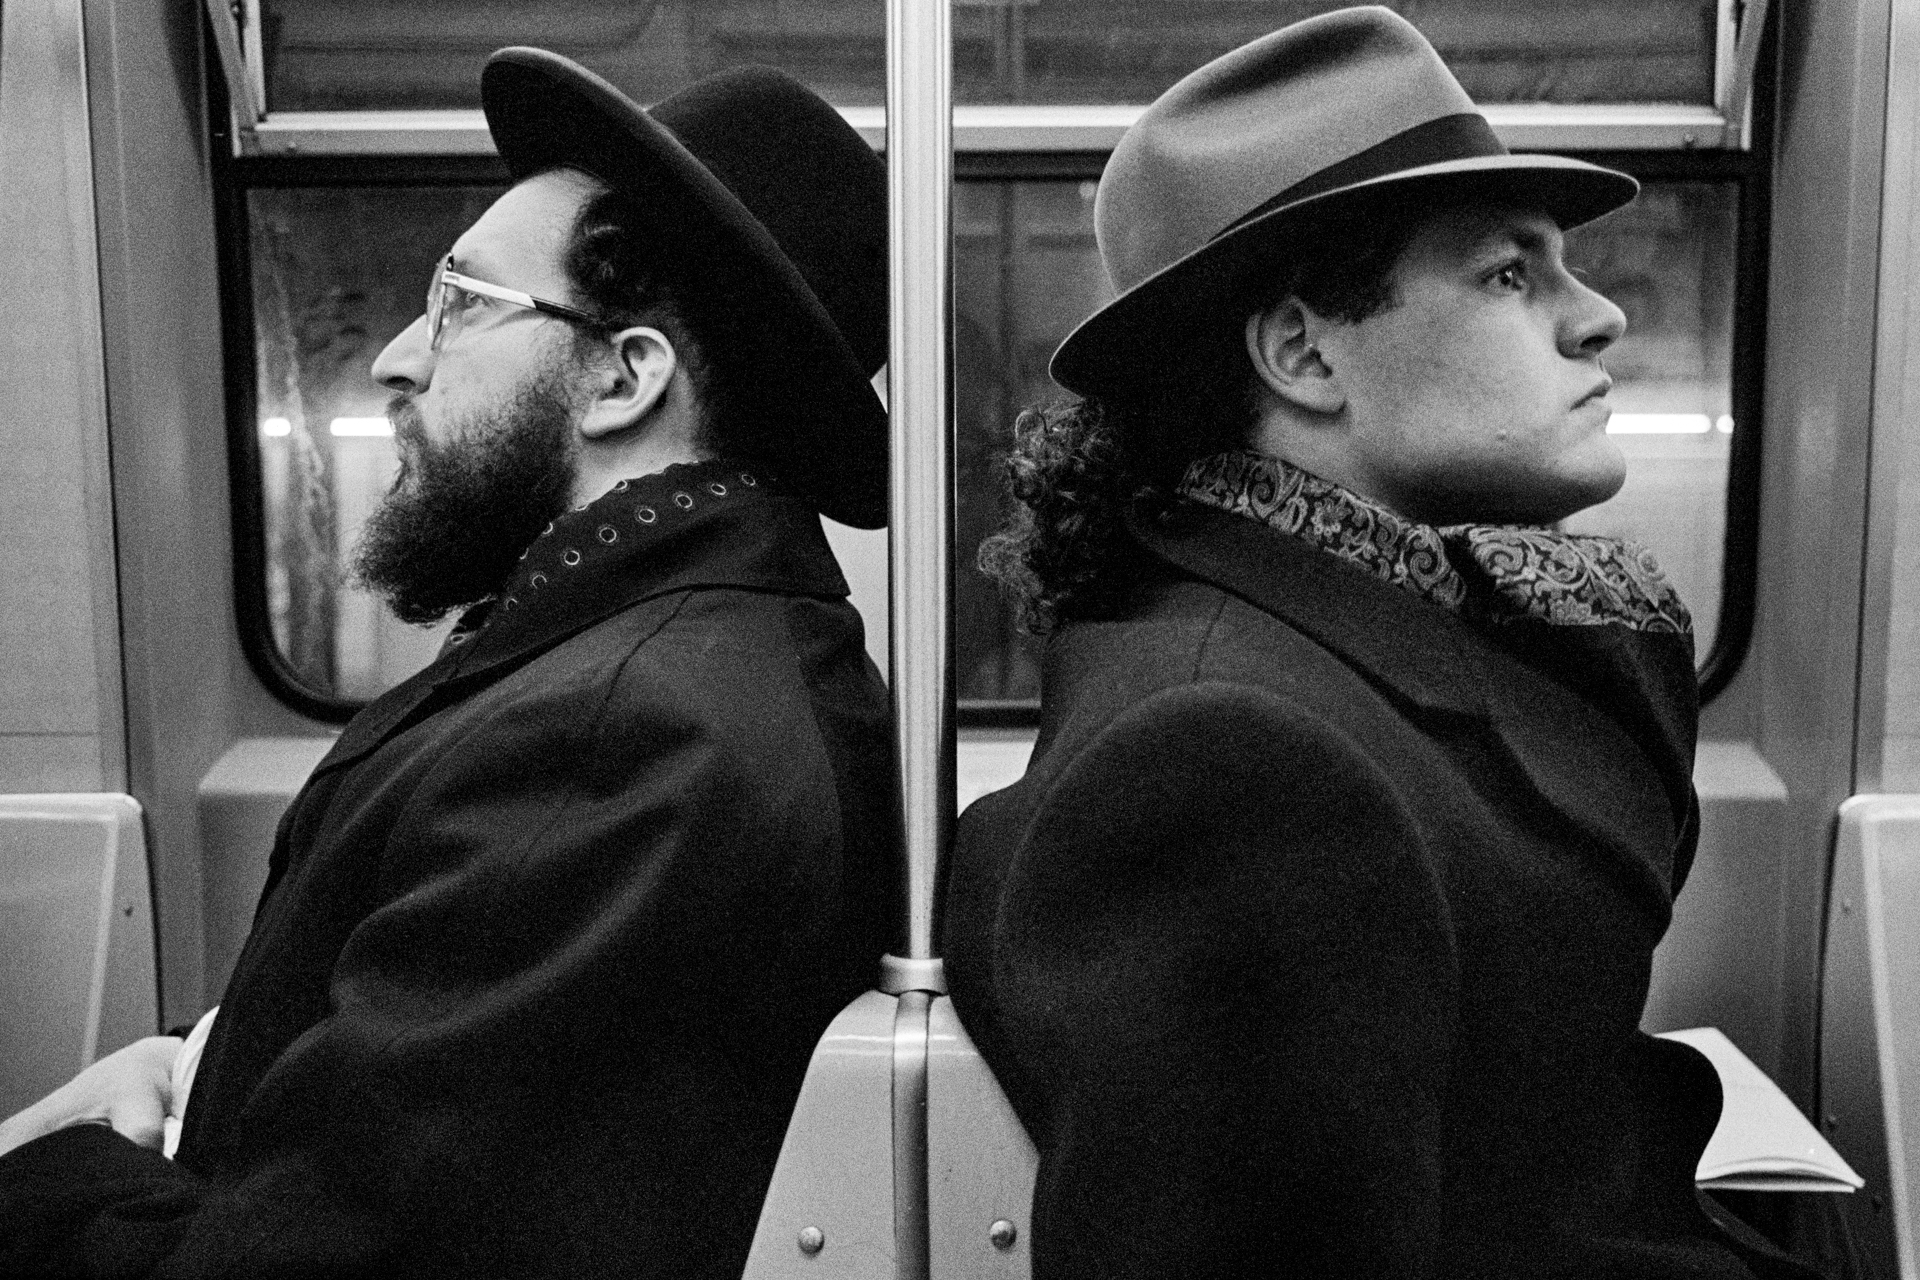 Hasid and Hipster, NYC 2001, silver gelatin print by Richard Sandler